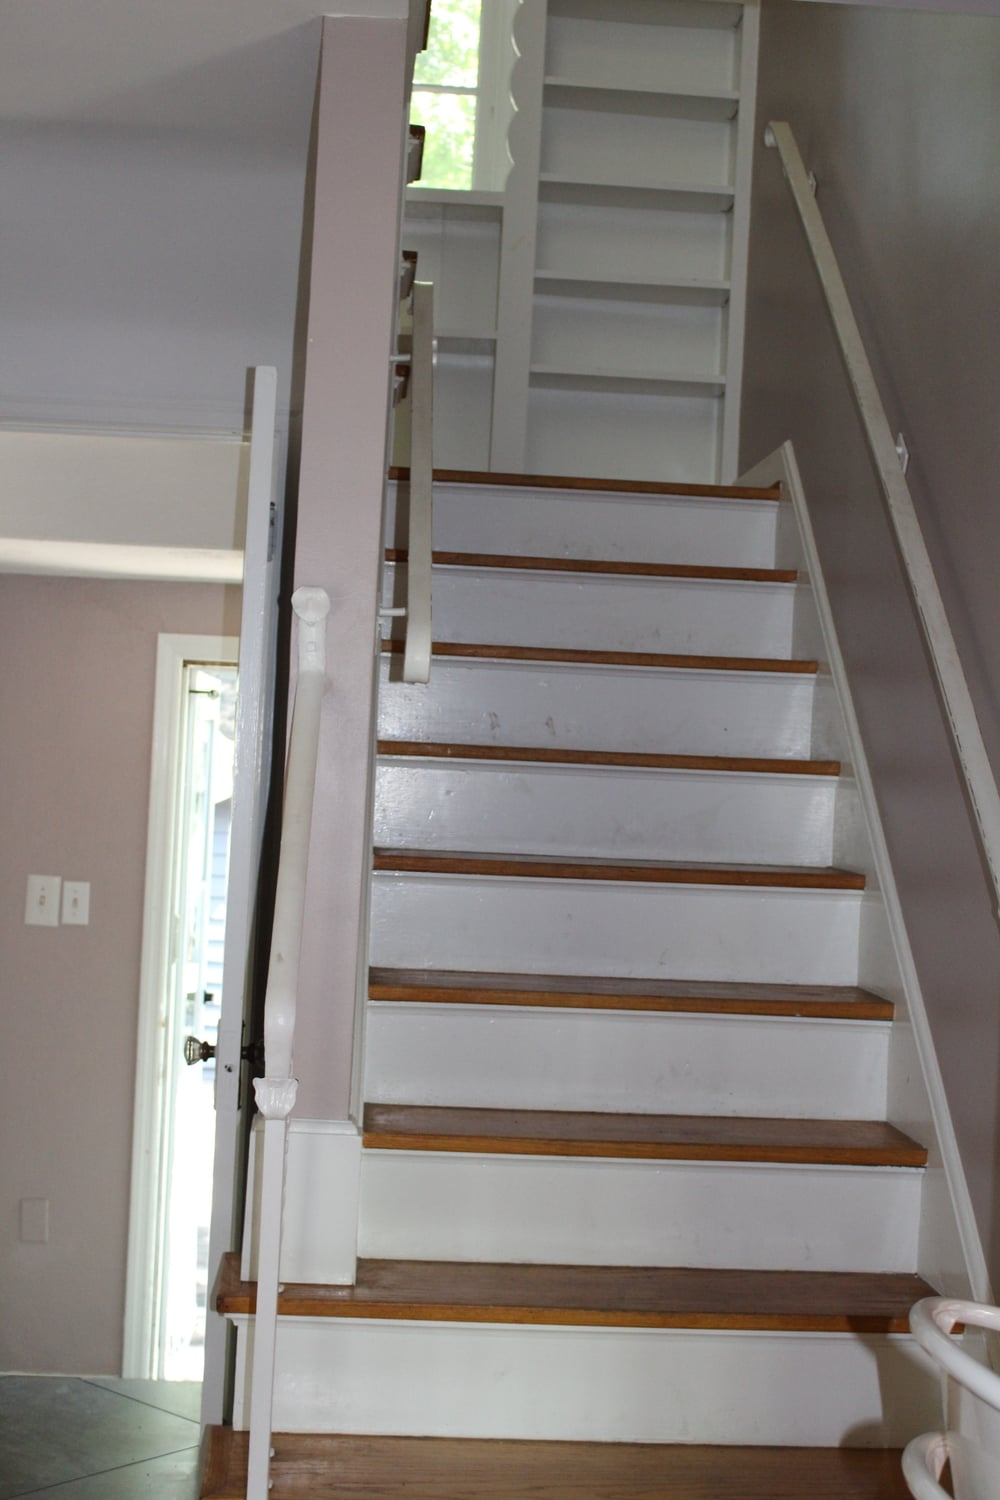 Hallway and stairs.